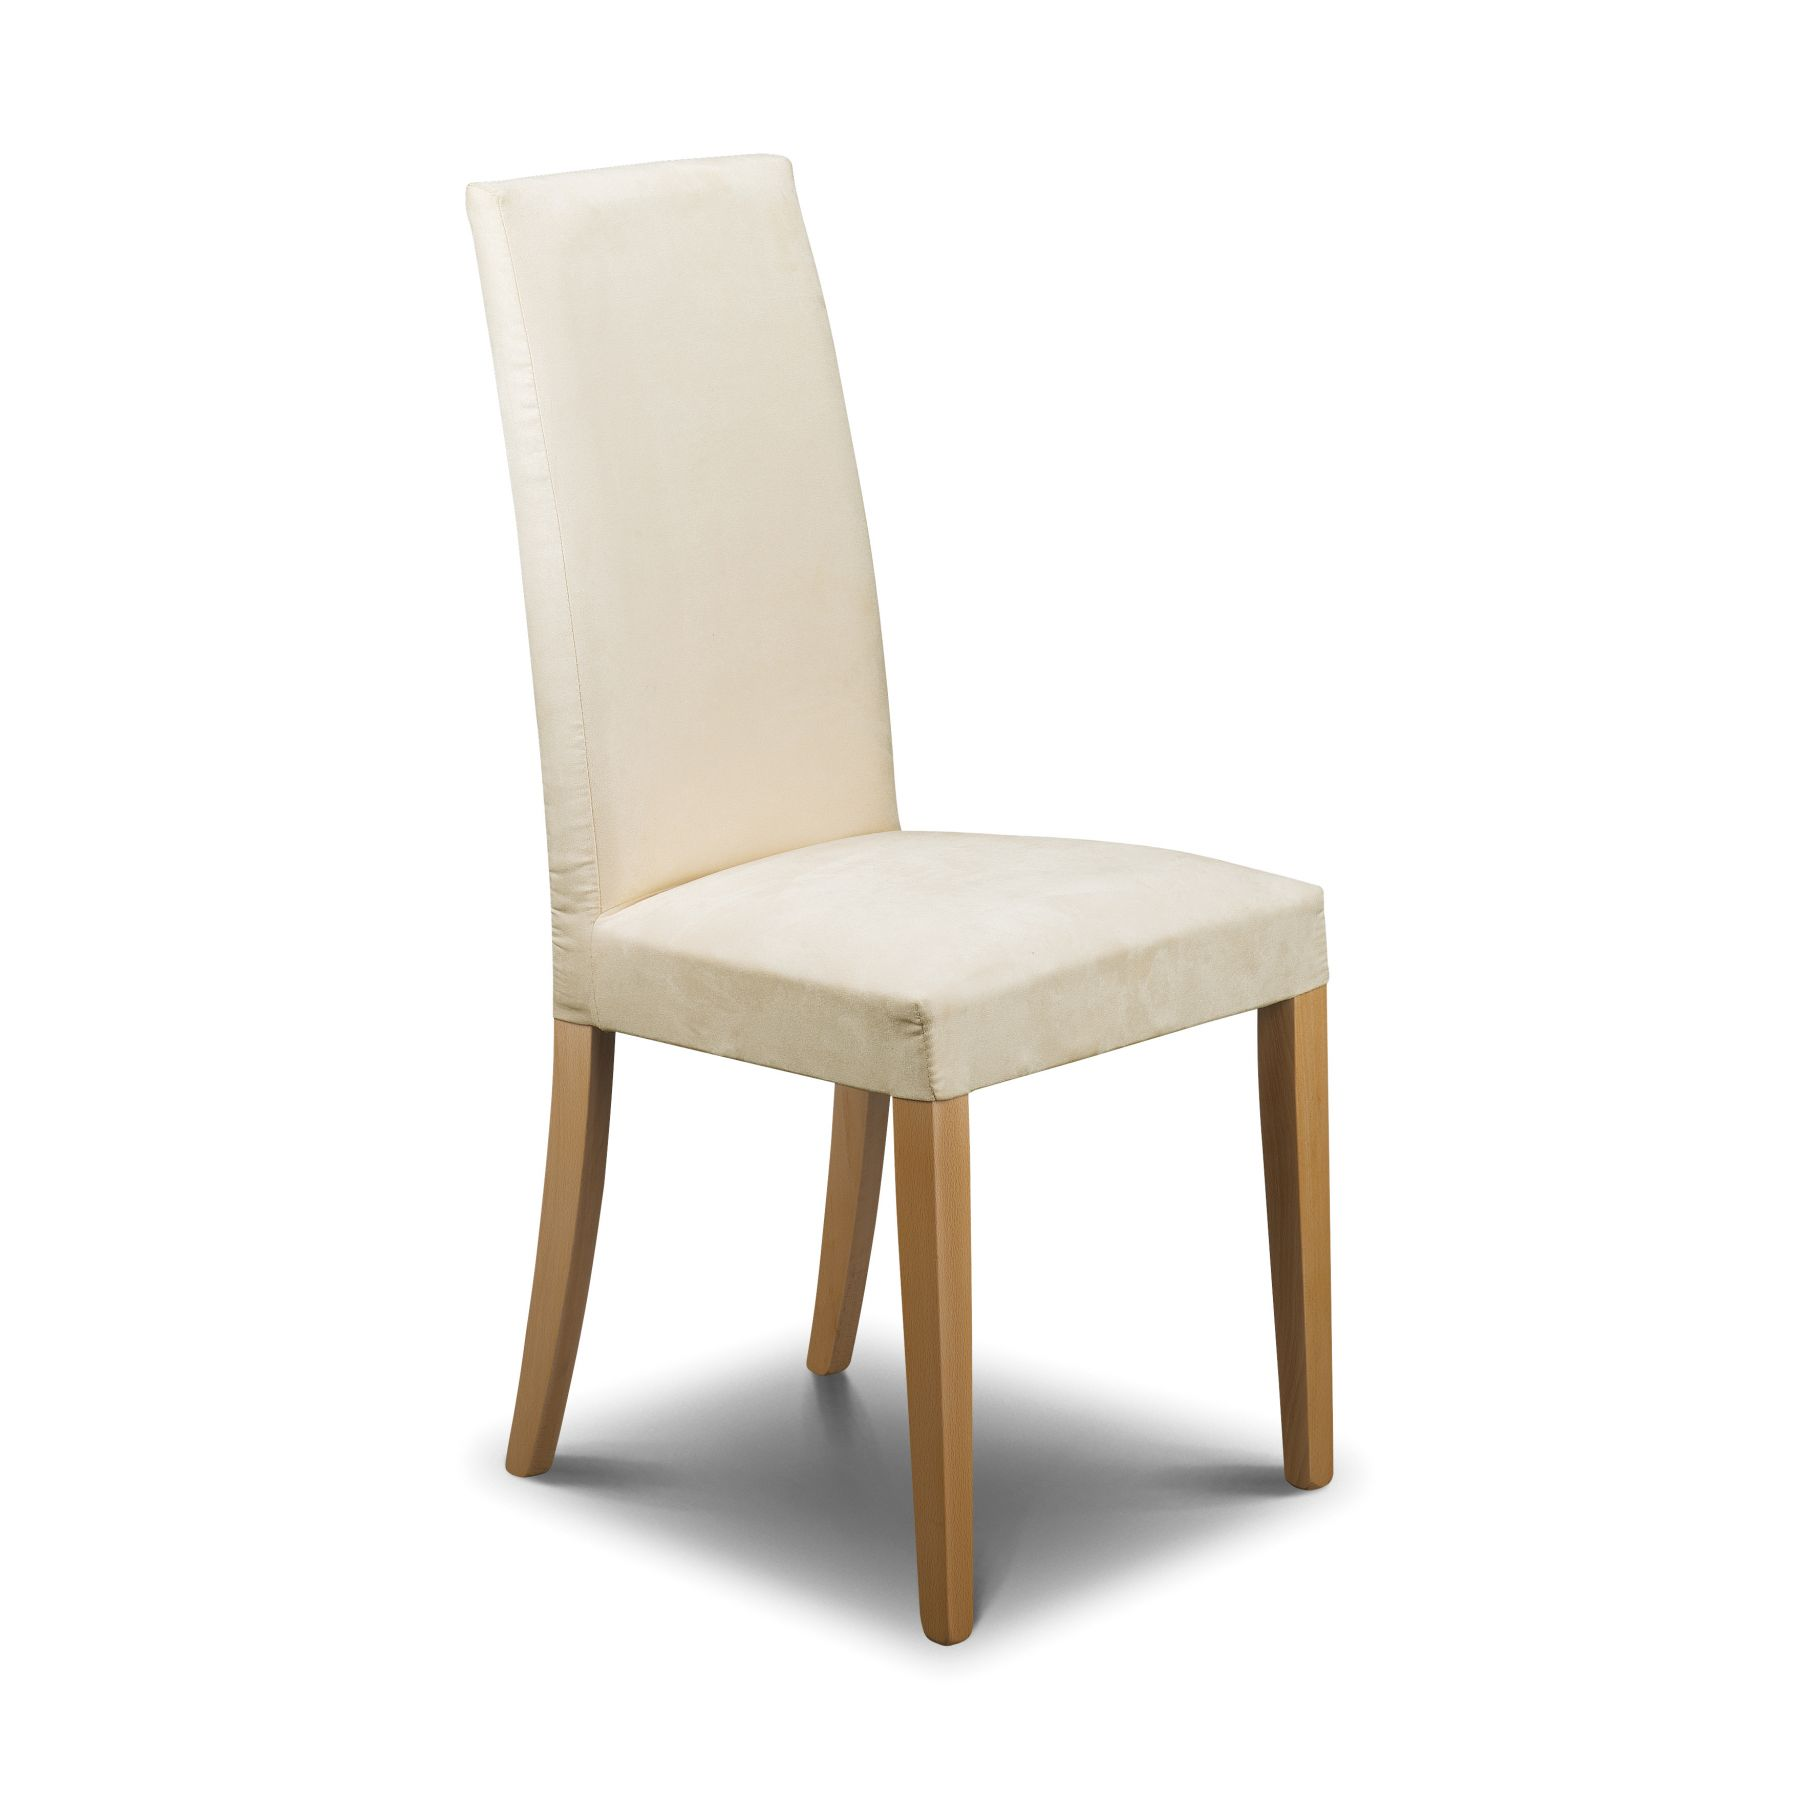 Upholstered Chairs For Dining Room White Upholstered Dining Chair Homesfeed